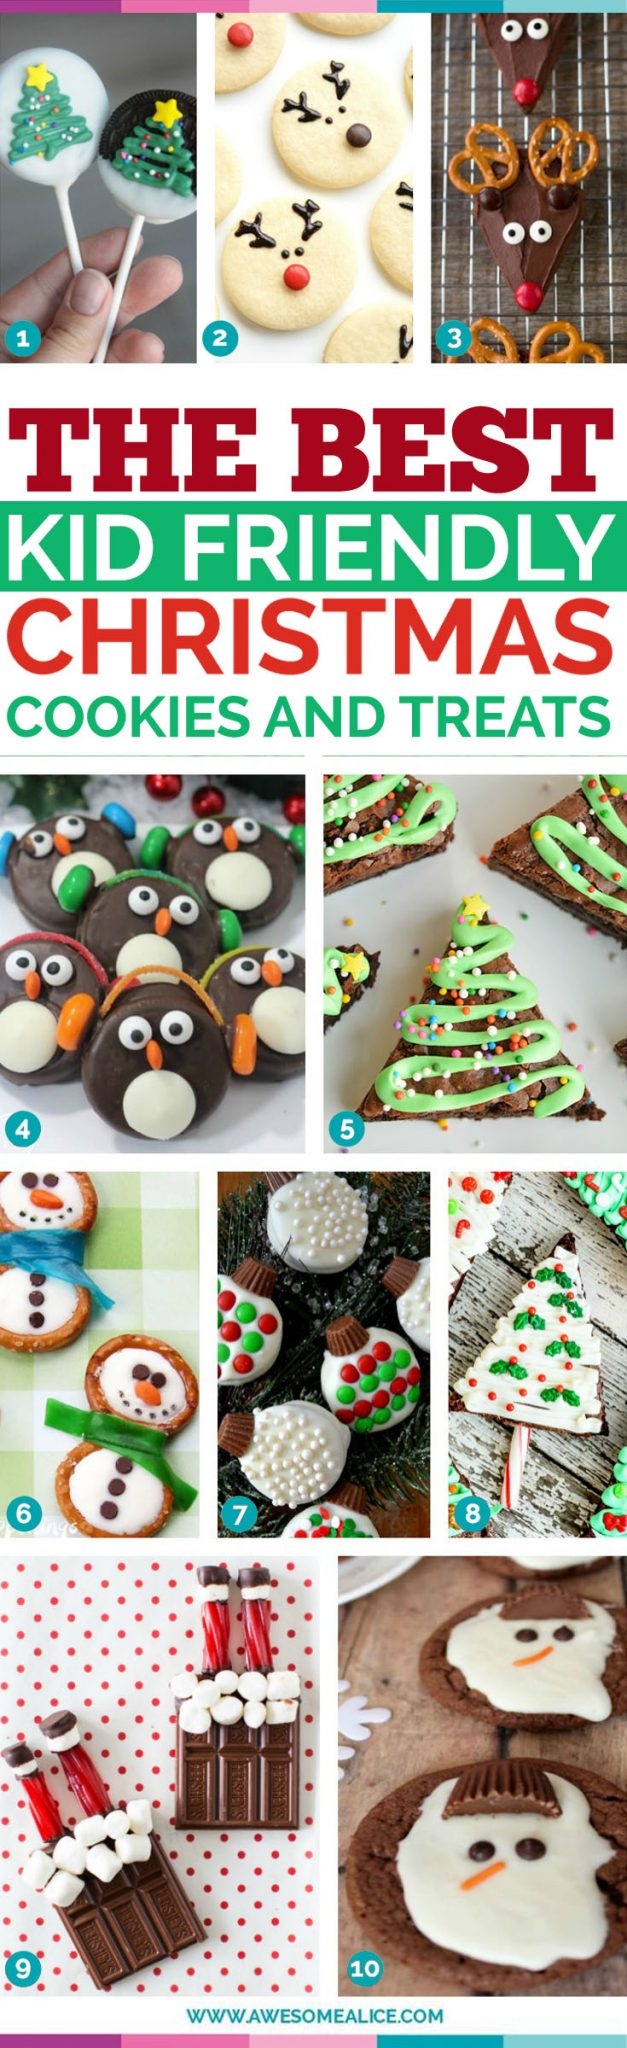 The Best Christmas Cookies To Make With Your Kids Awesome Alice